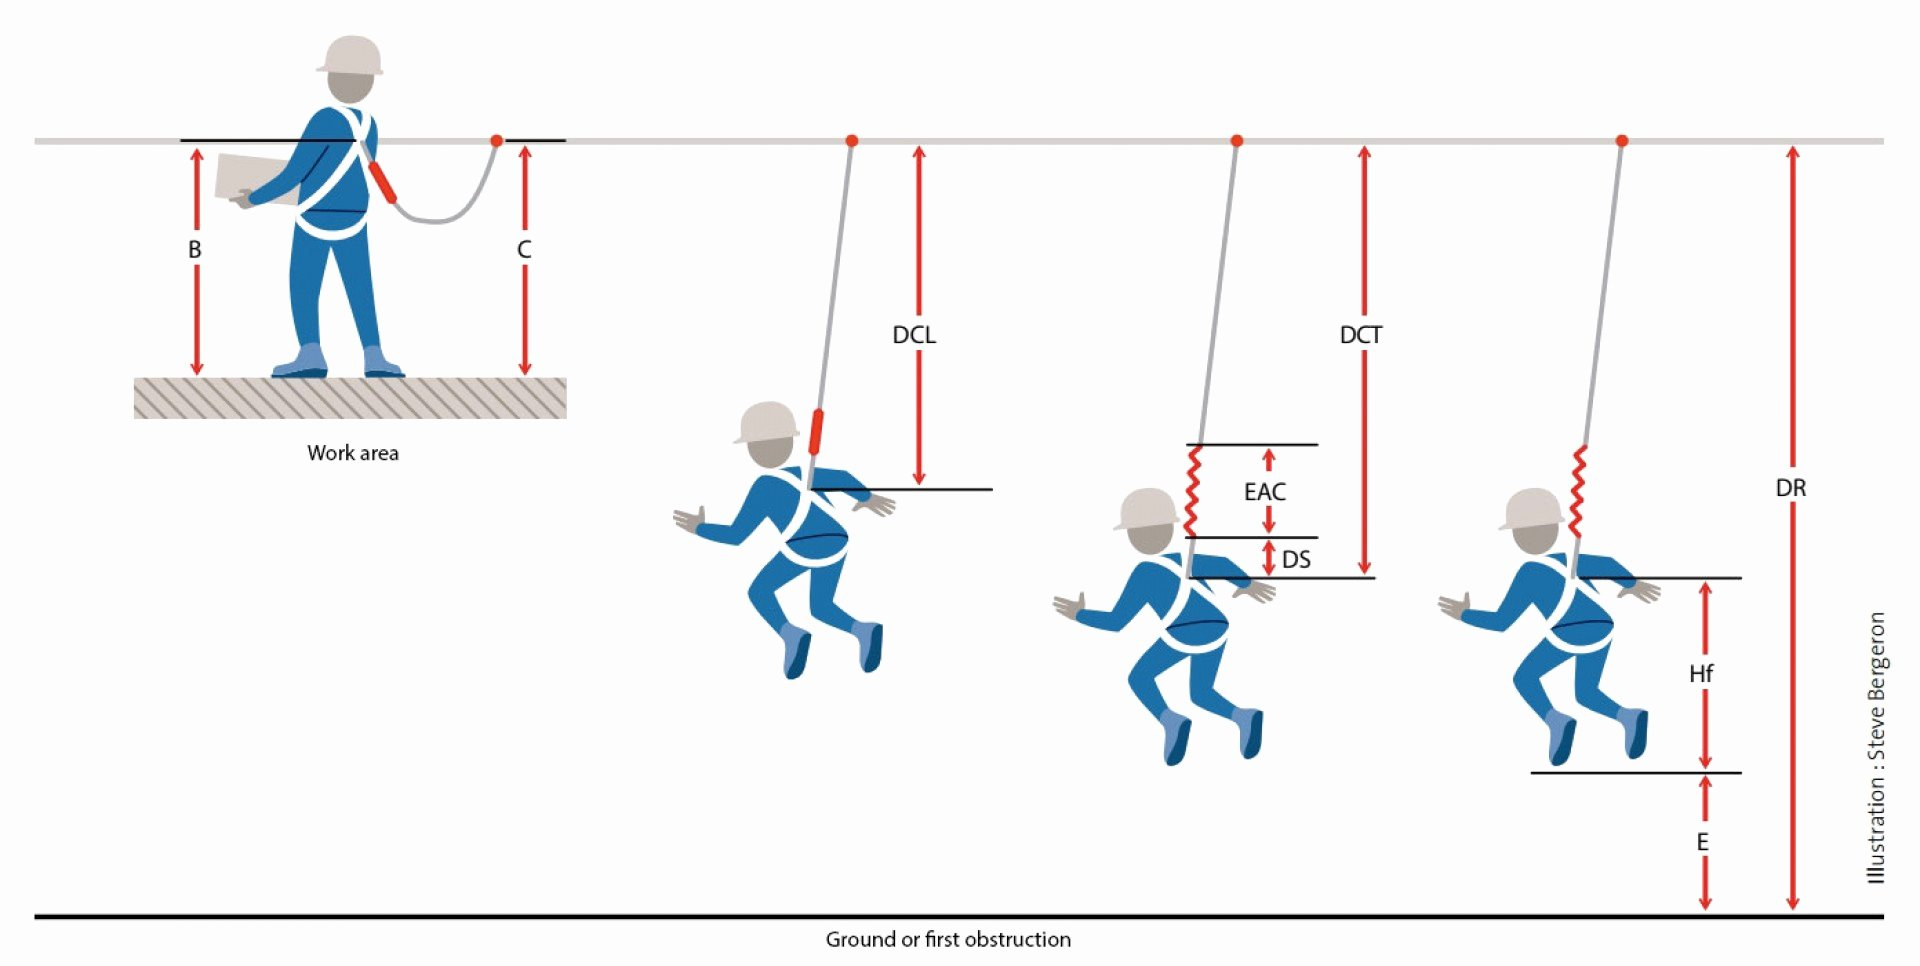 Fall Protection Plan Template Lovely Best Fall Protection Rescue Plan Template south Africa